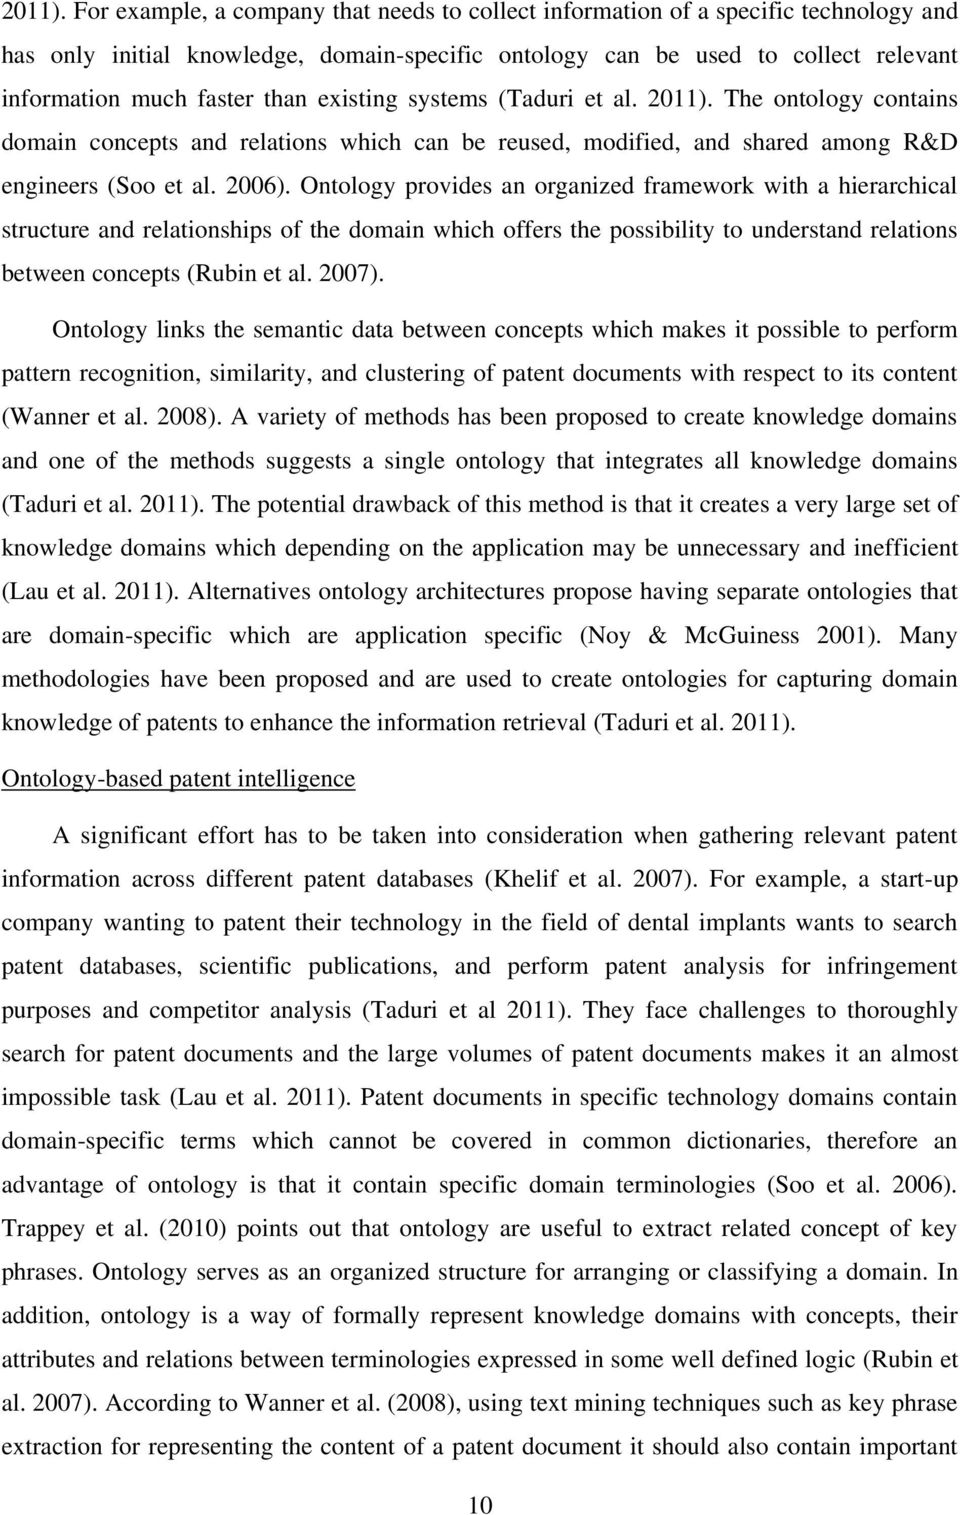 existing systems (Taduri et al.  The ontology contains domain concepts and relations which can be reused, modified, and shared among R&D engineers (Soo et al. 2006).